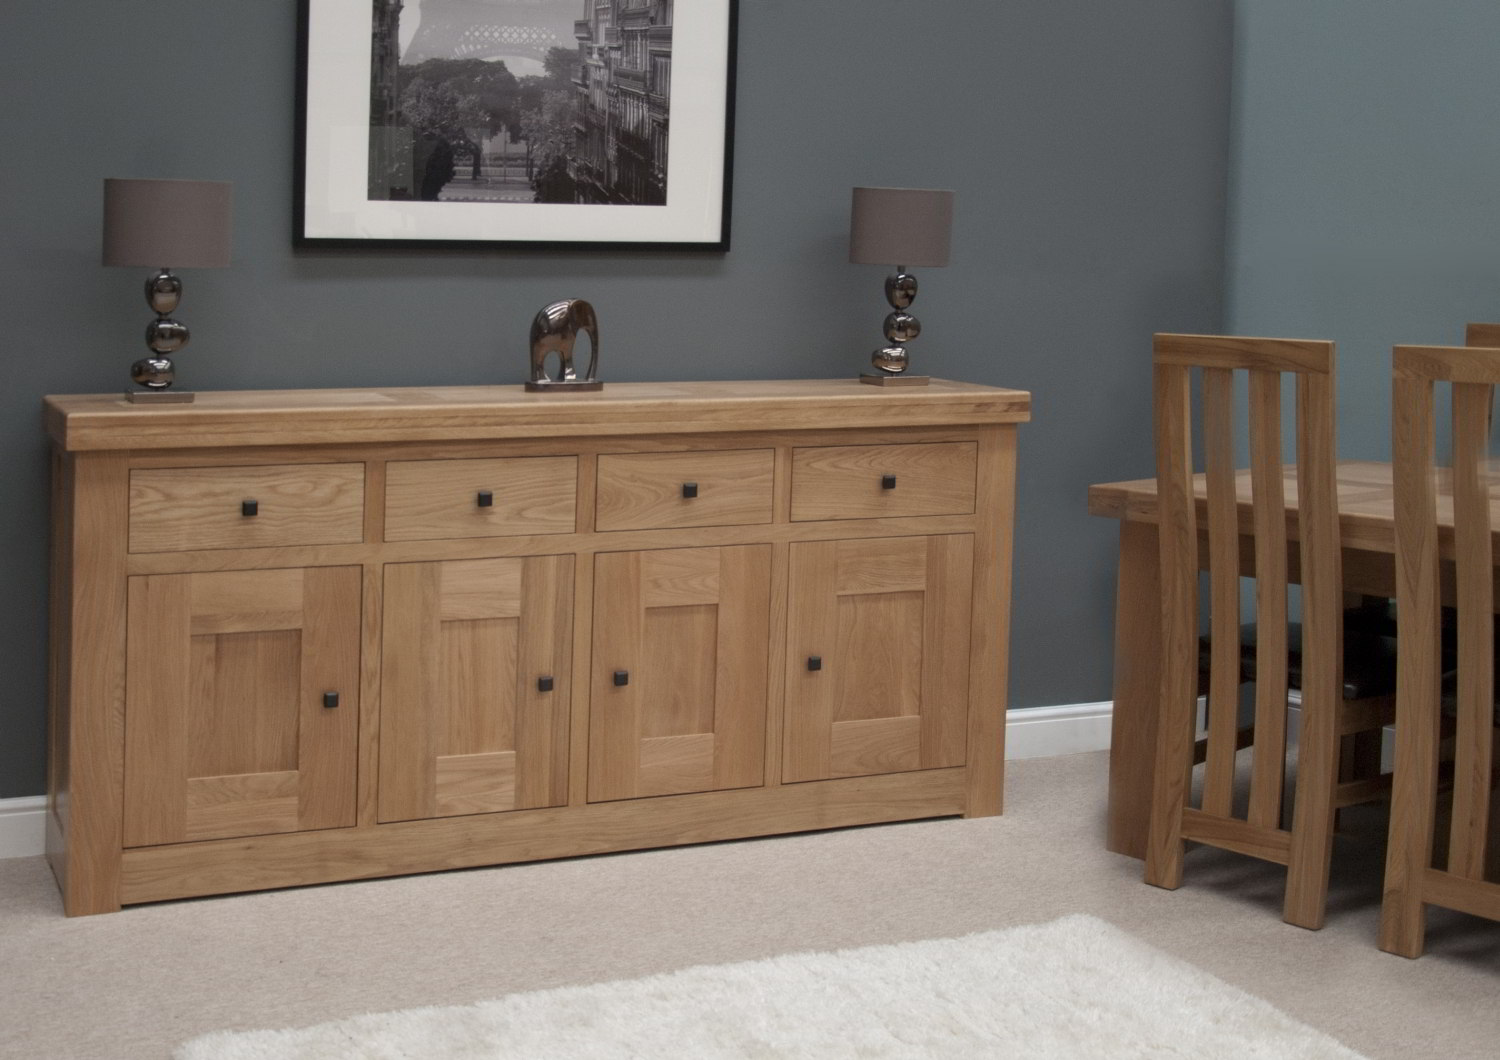 Belgrave solid premium oak dining room furniture extra large storage sideboard eBay